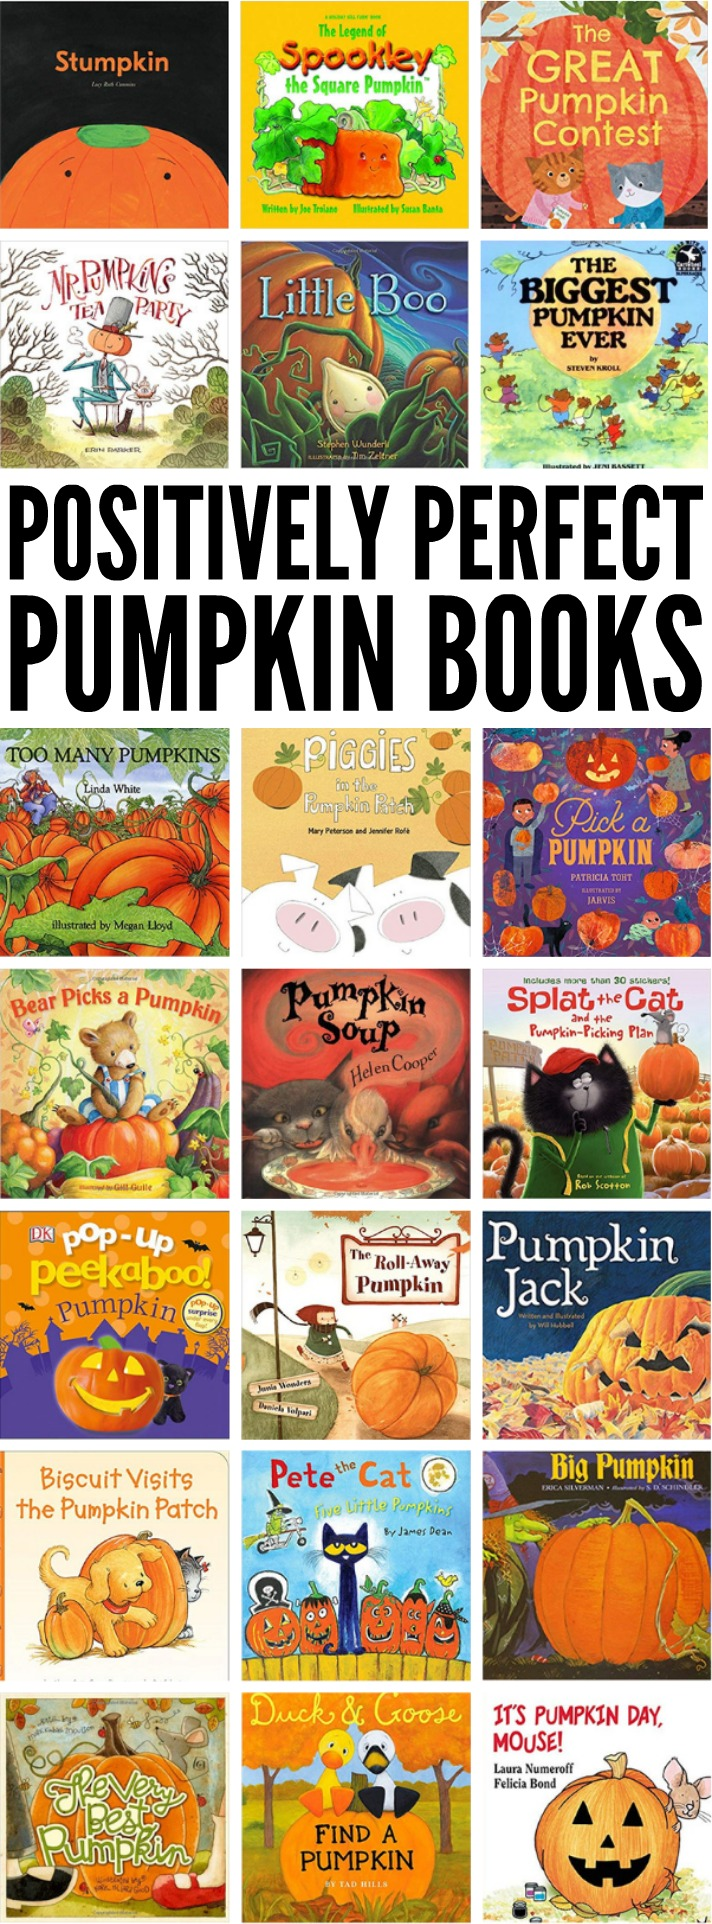 Celebrate Halloween with your little one by cozying up to an adorable seasonal read like any of these positively perfect pumpkin books!